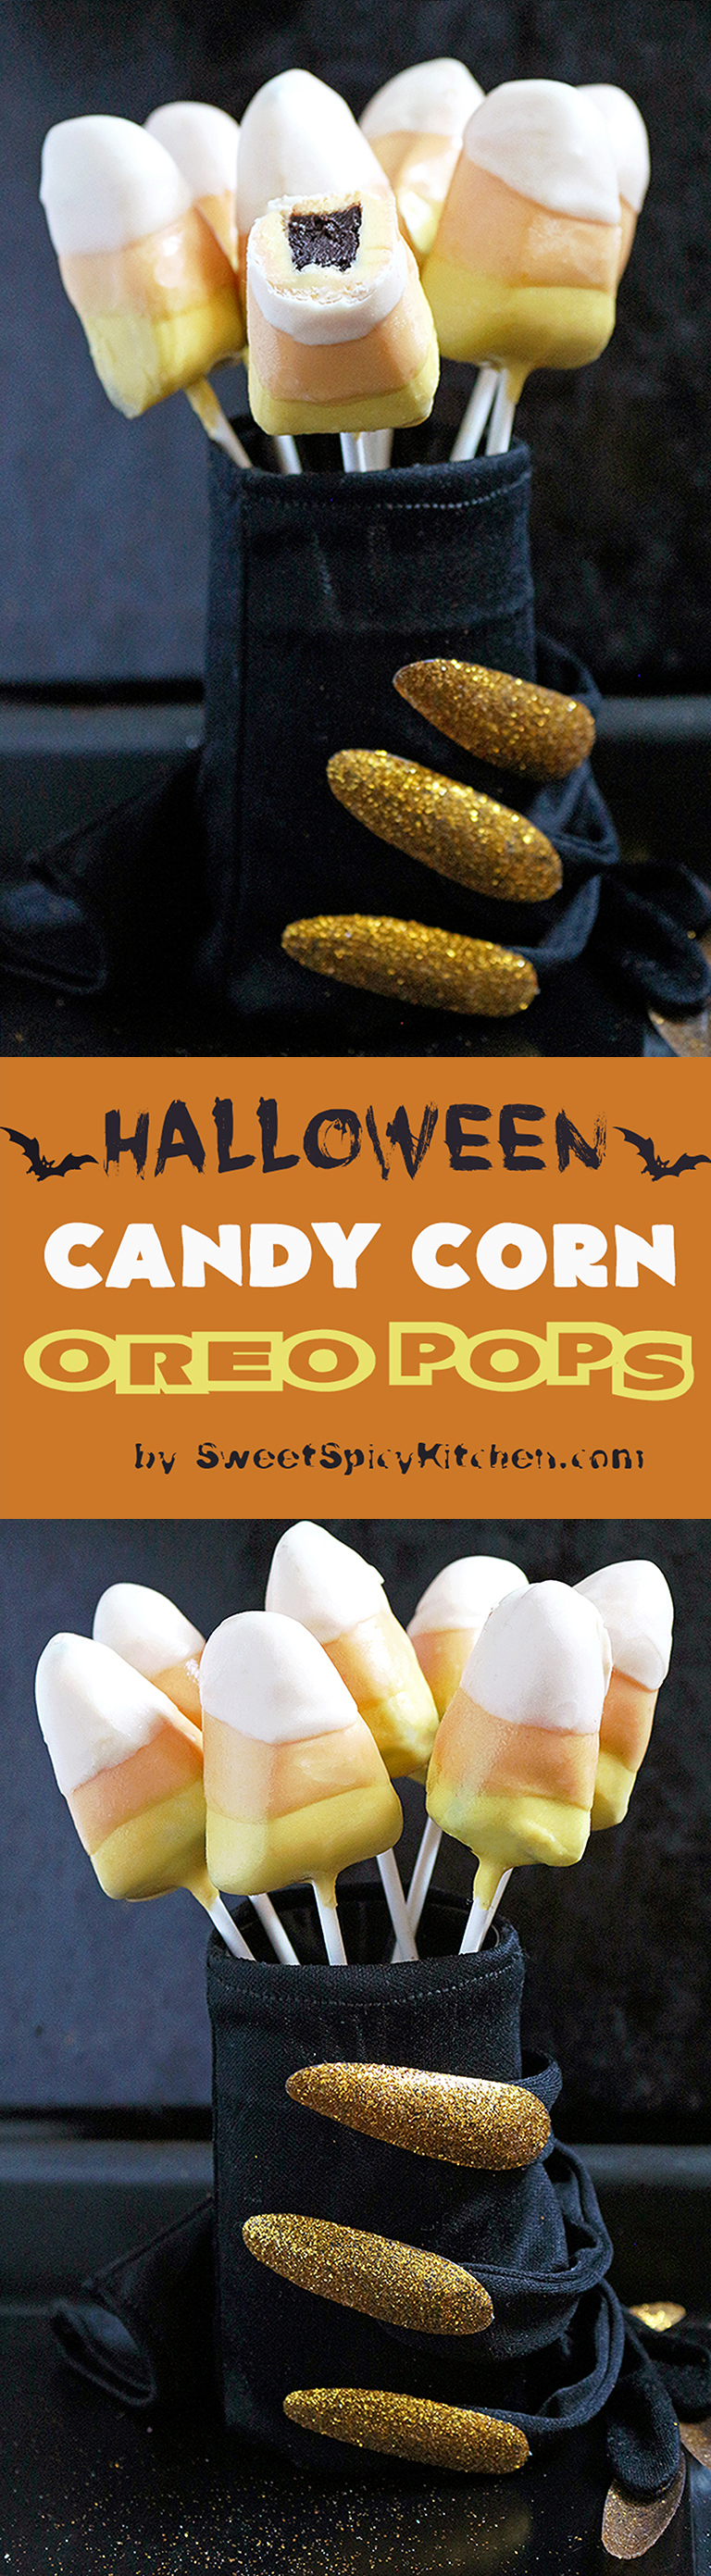 This is my recipe for Halloween. Only three ingredients are enough to make Halloween Candy Corn Oreo Pops. Super easy, no bake recipe. Are you ready for the Halloween party? October 31st is getting closer.